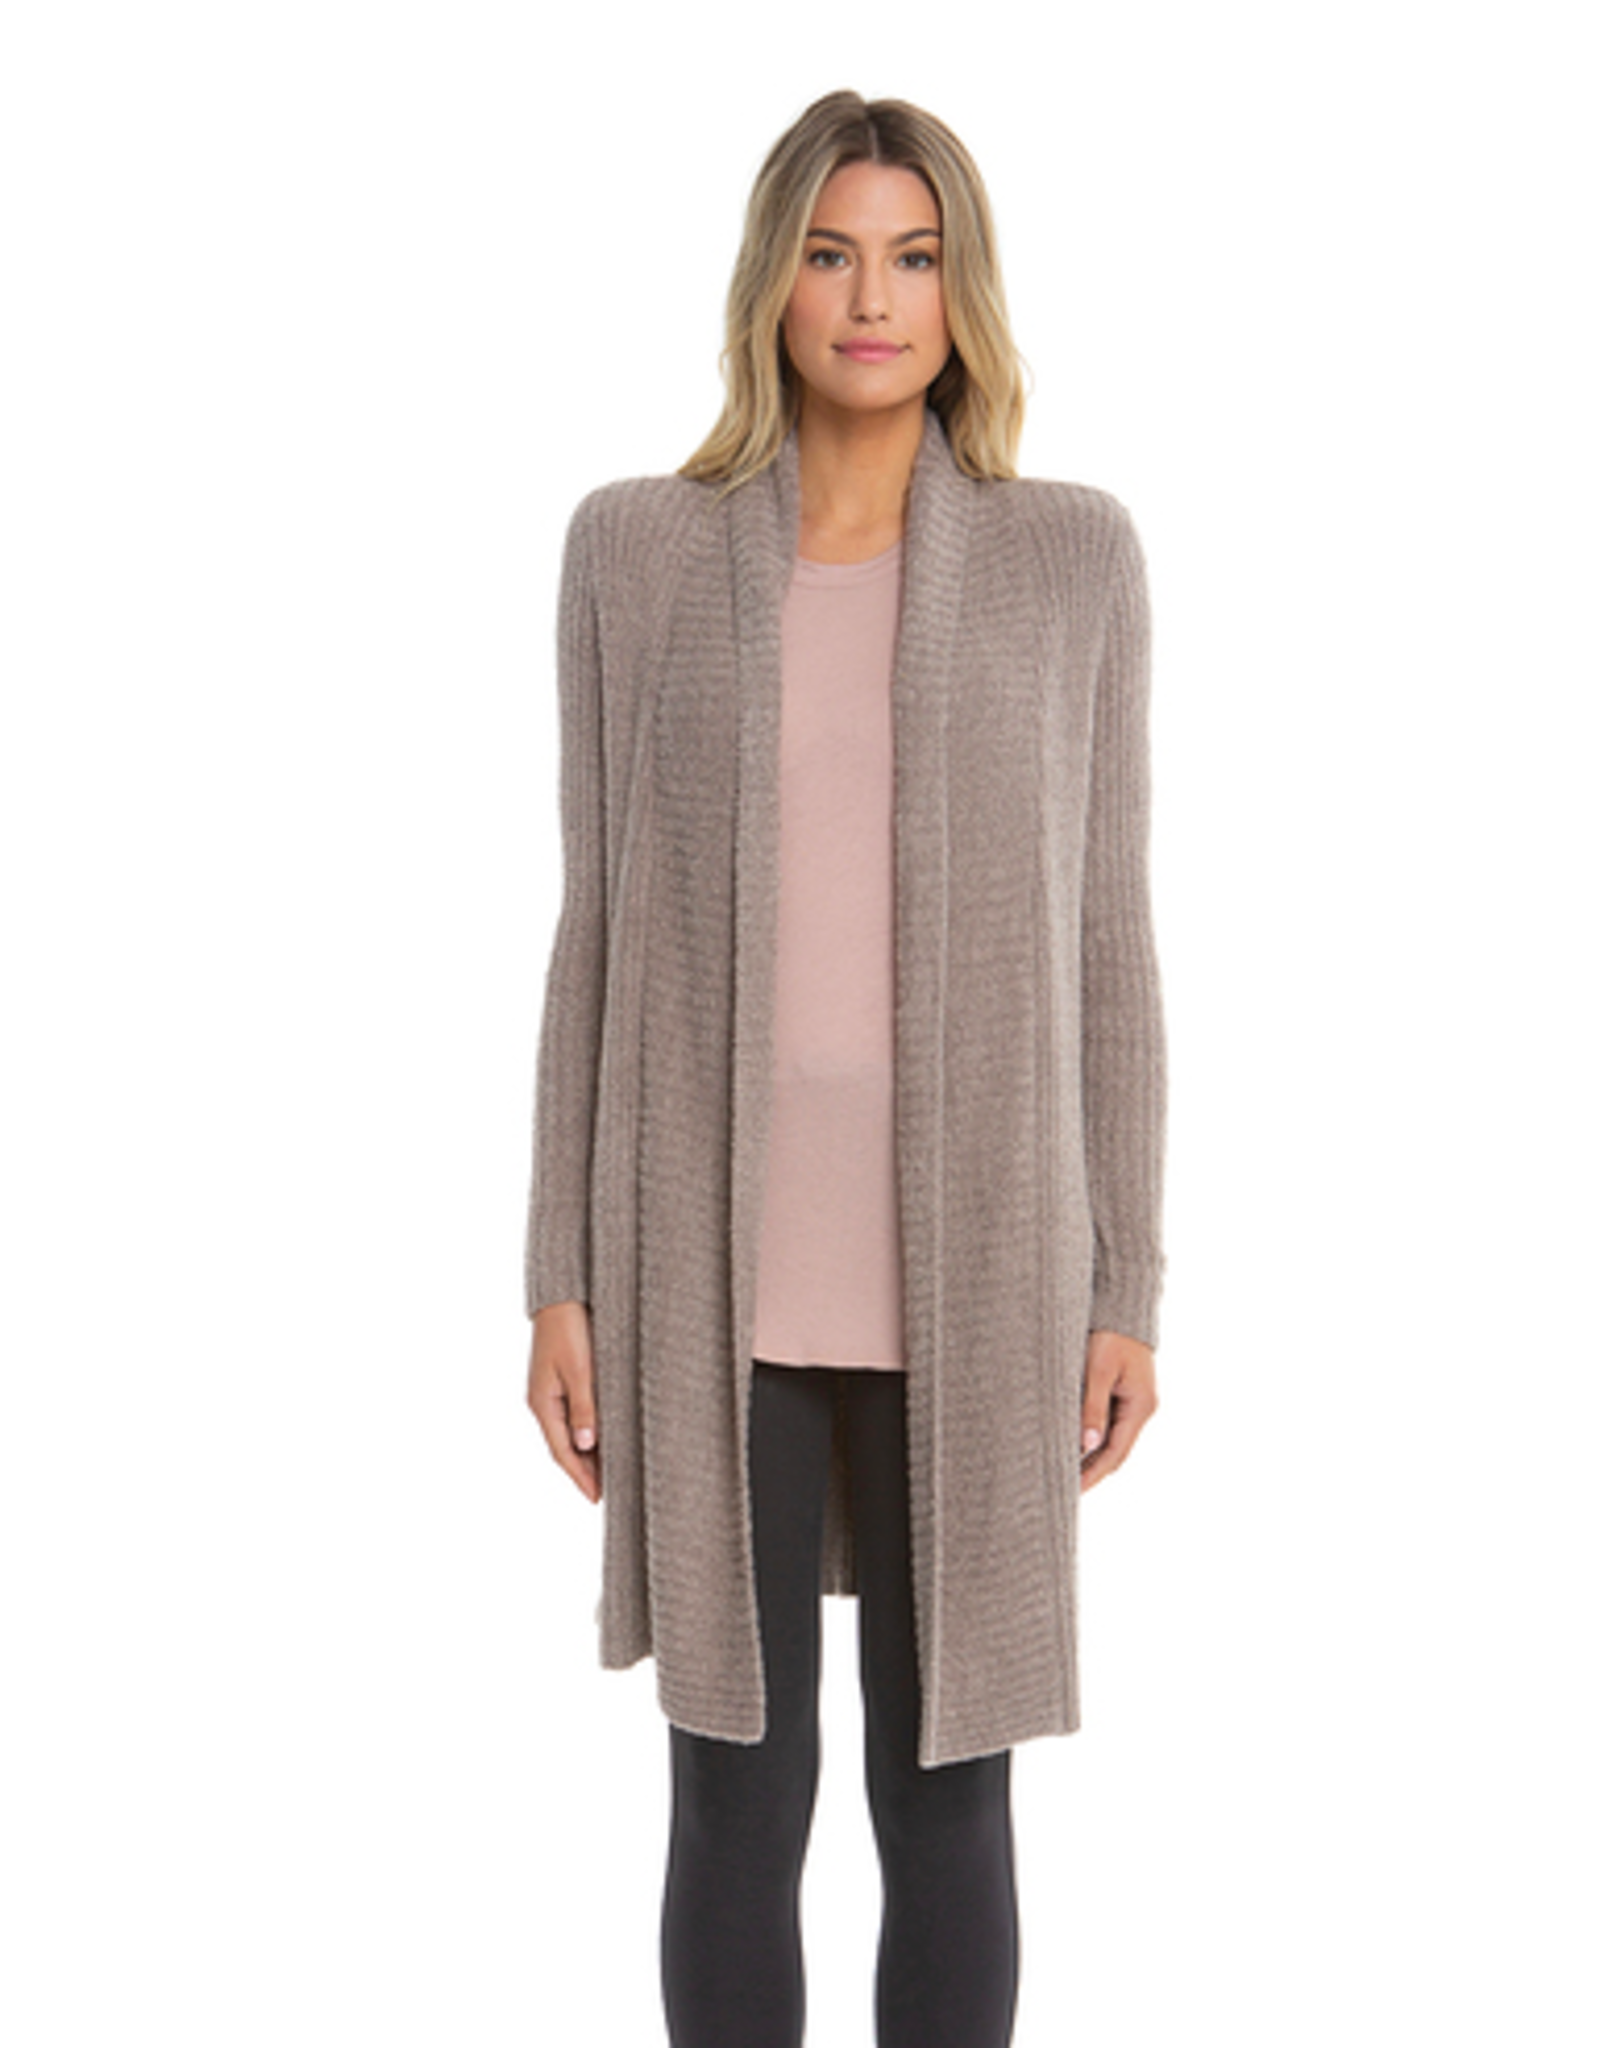 Barefoot Dreams CozyChic Lite Montecito Cardi in Driftwood